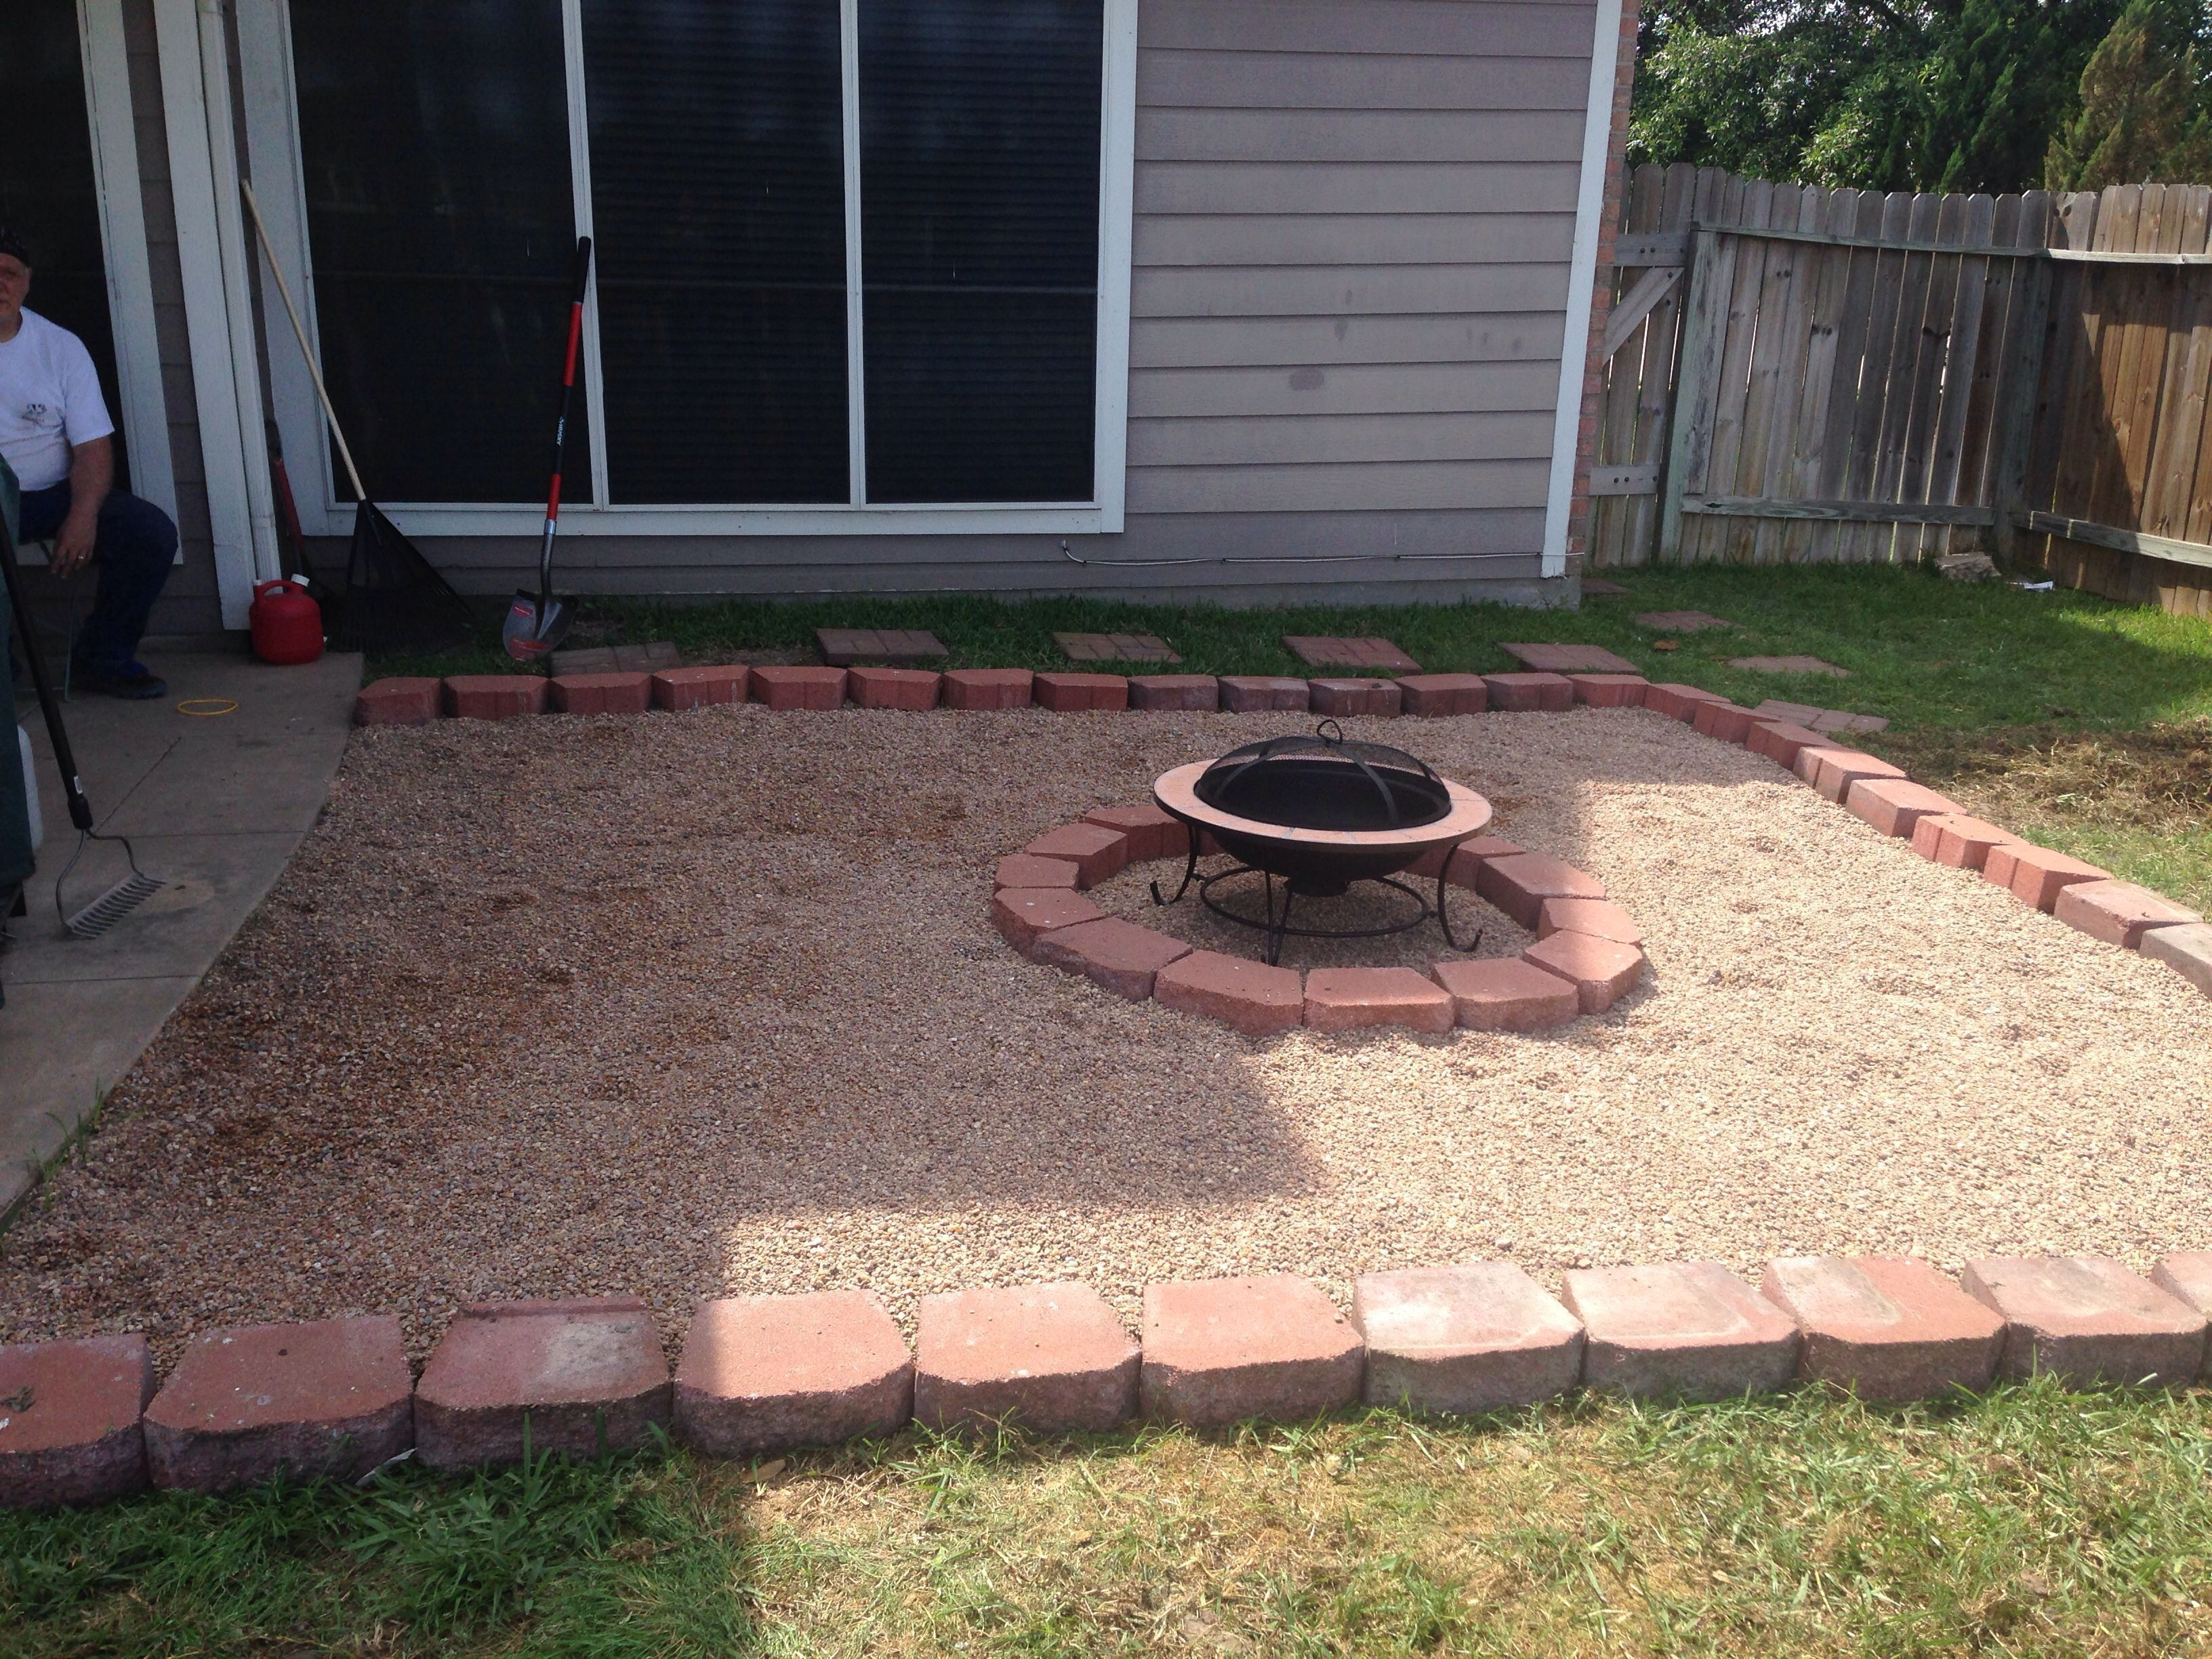 Our Backyard Fire Pit Diy Tilled The Grass, Layer Of